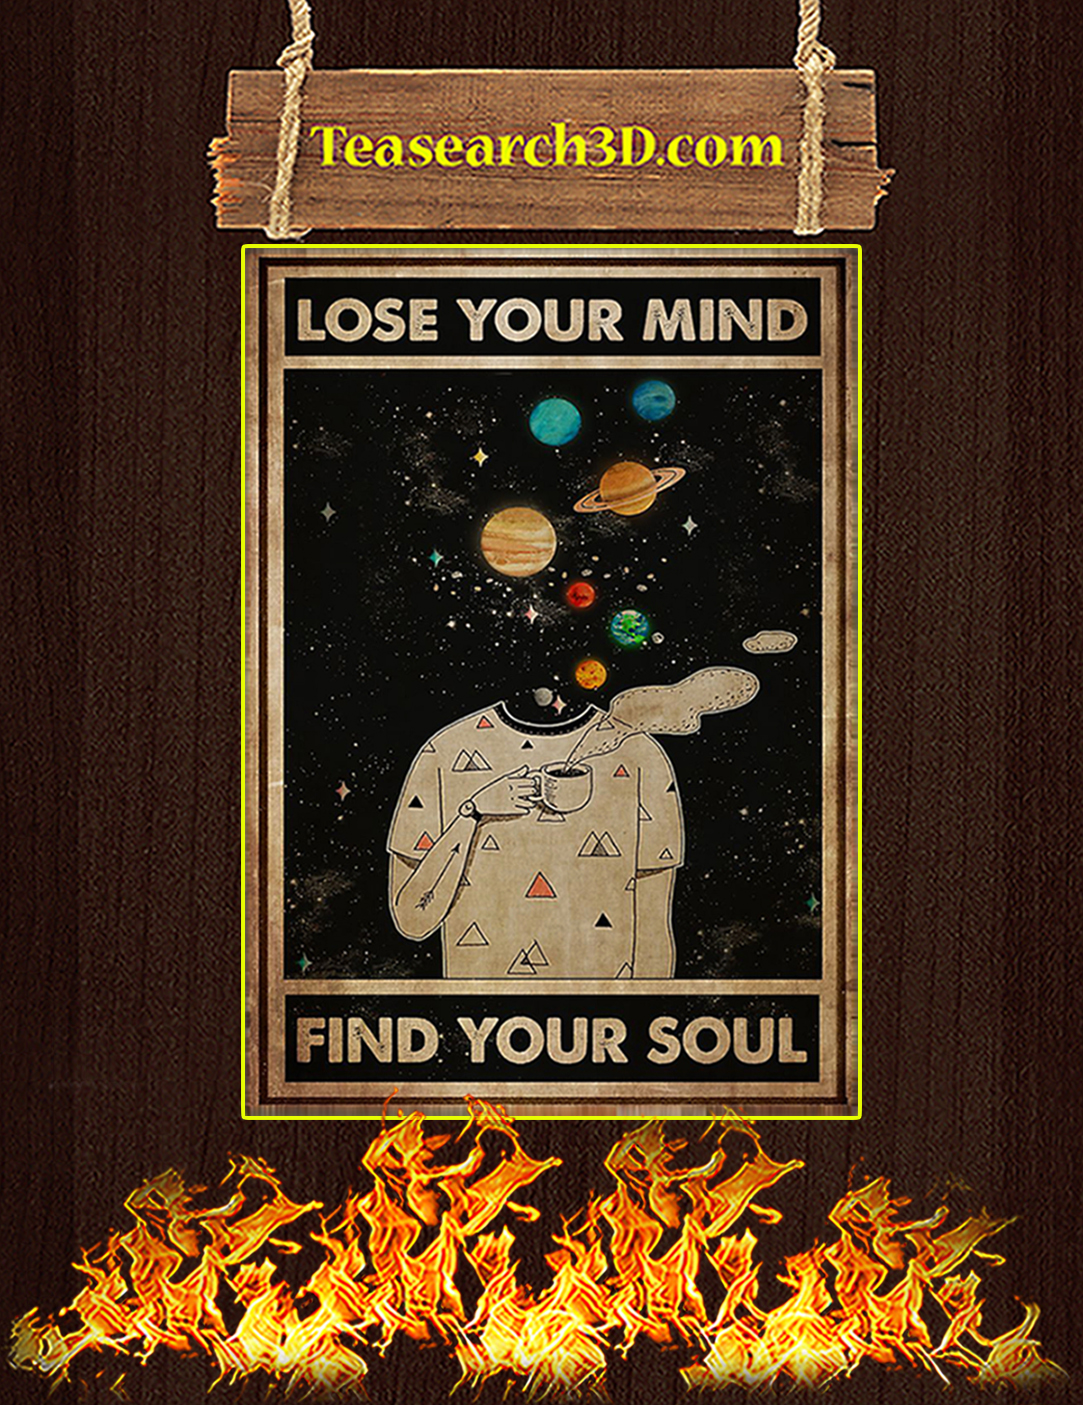 Galaxy Lose your mind find your soul poster A2